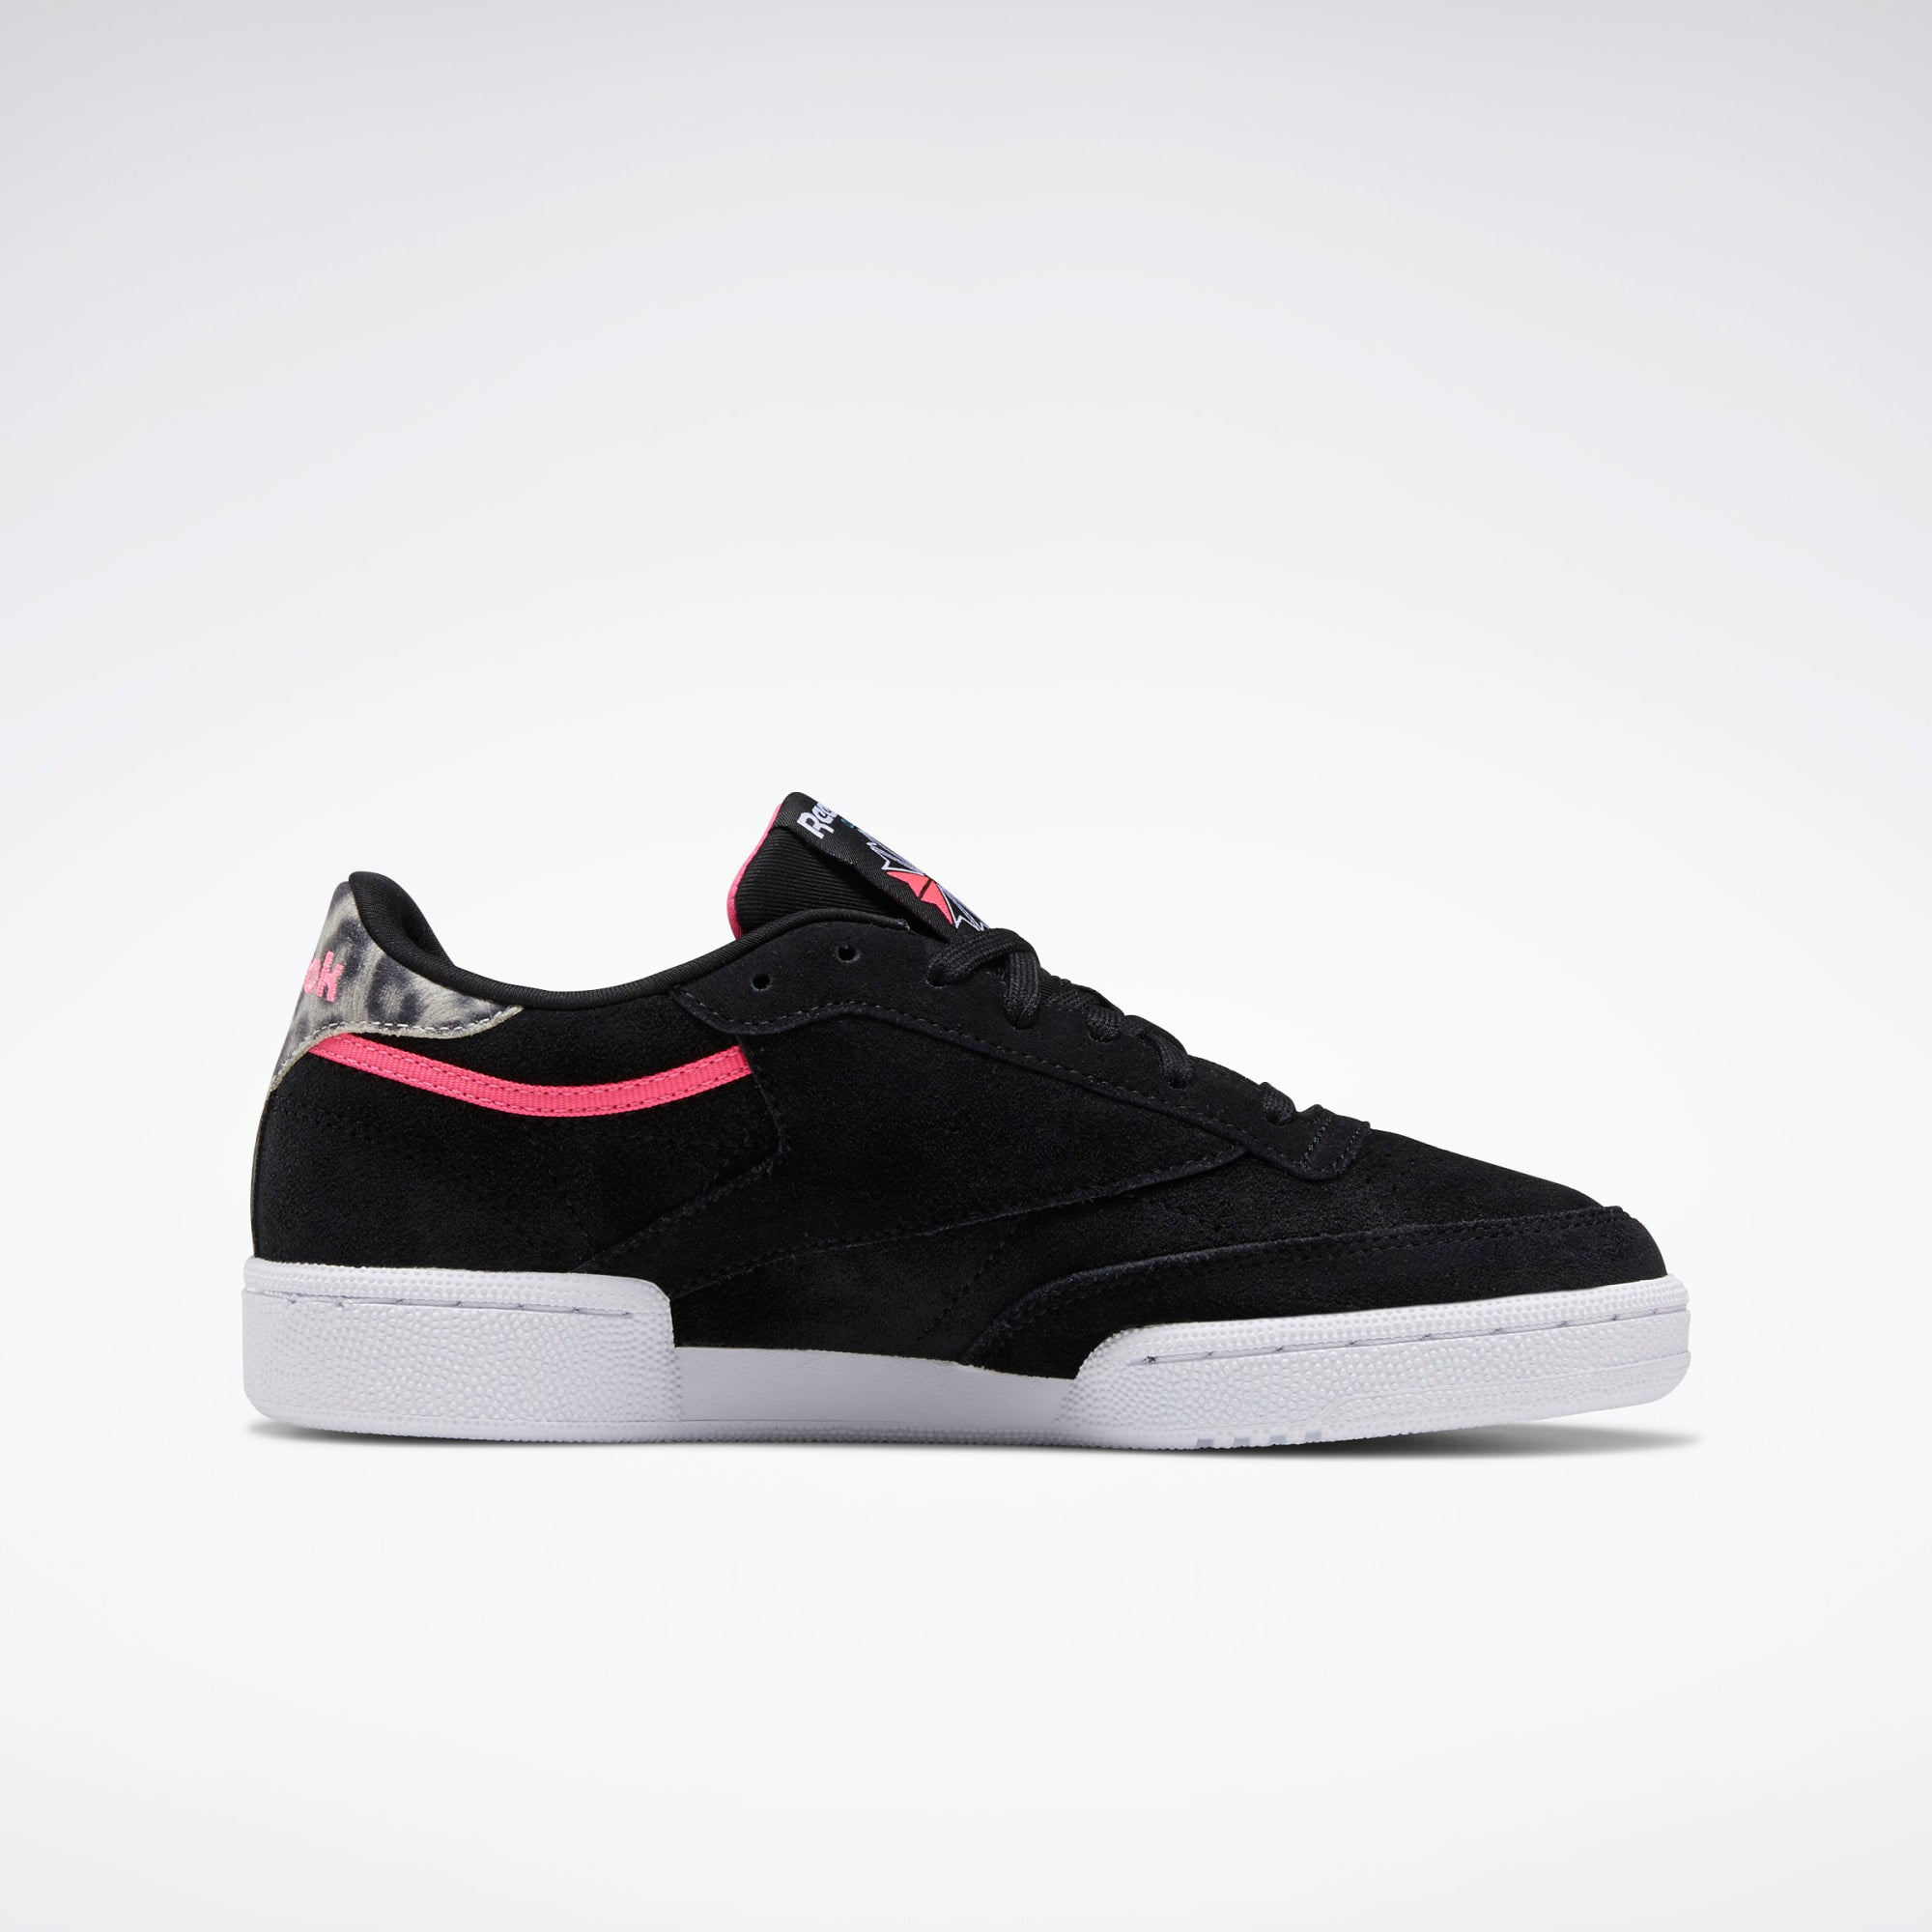 Reebok Club C 85 Shoes - Black